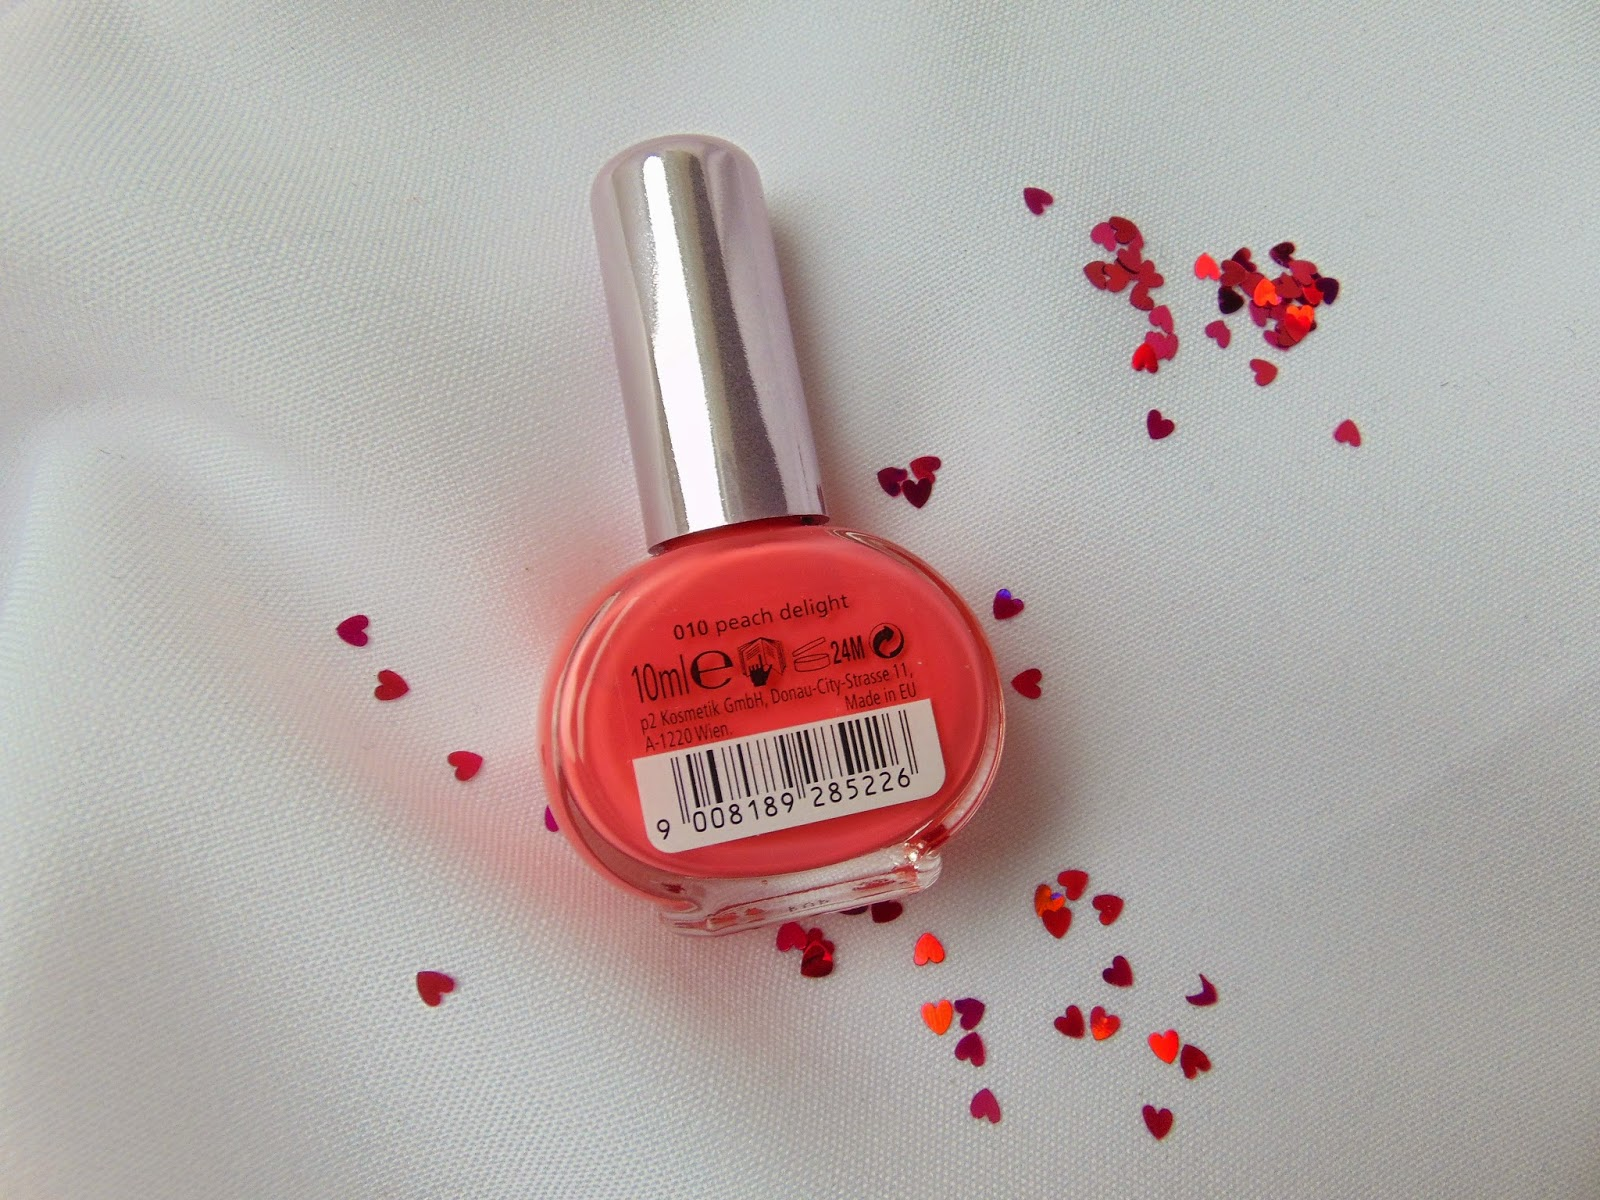 p2 Limited Edition: Just dream like - spring's fav nail polish - Peach Delight - www.annitschkasblog.de